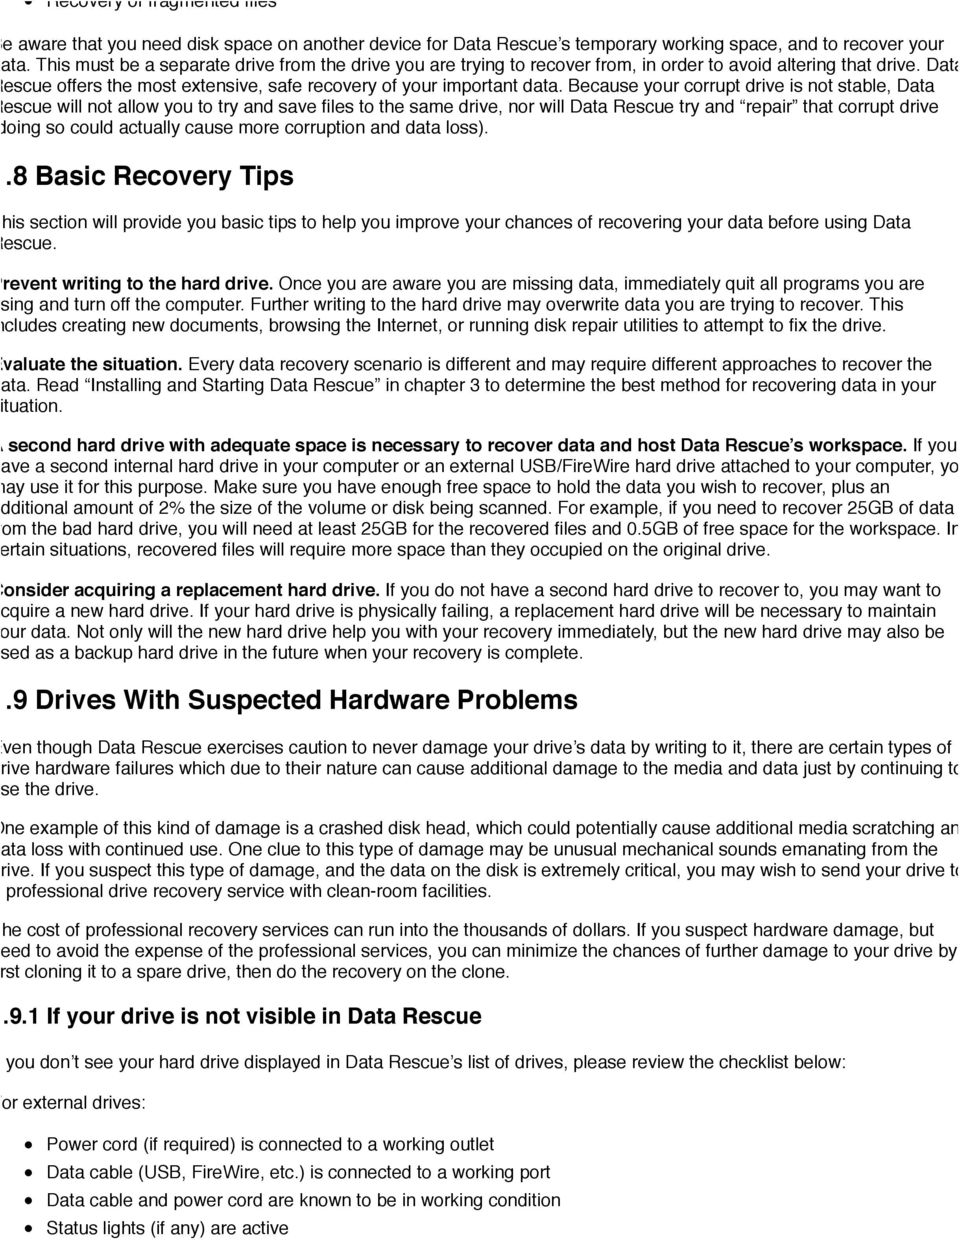 Because your corrupt drive is not stable, Data Rescue will not allow you to try and save files to the same drive, nor will Data Rescue try and repair that corrupt drive (doing so could actually cause